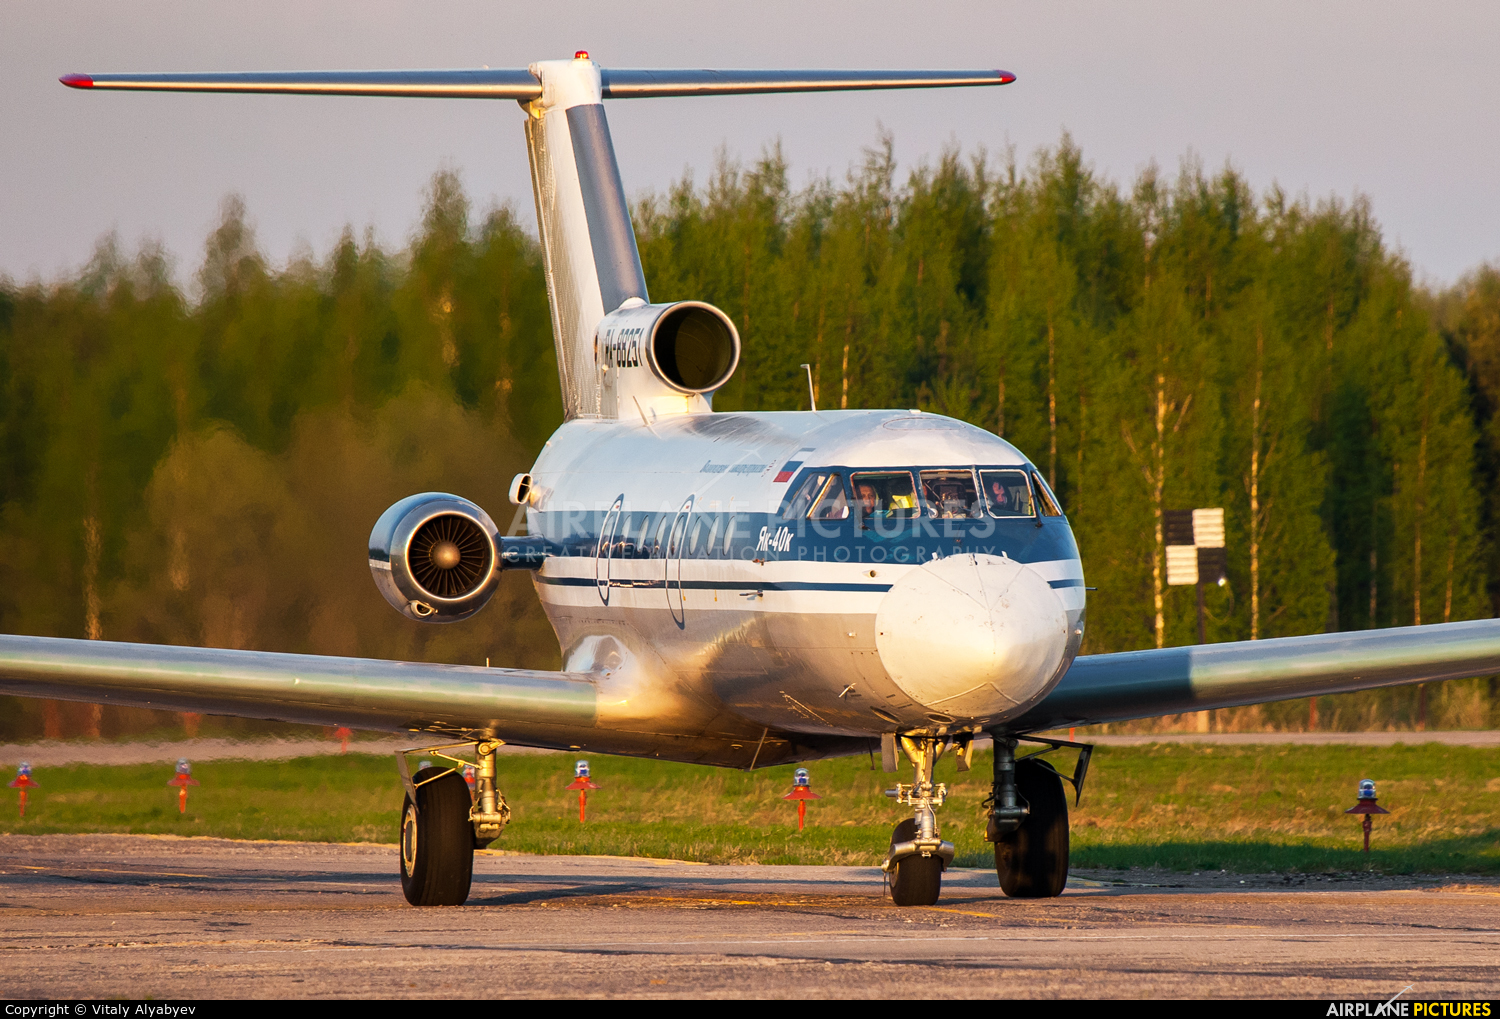 Vologda Air Enterprise RA-88251 aircraft at Vologda